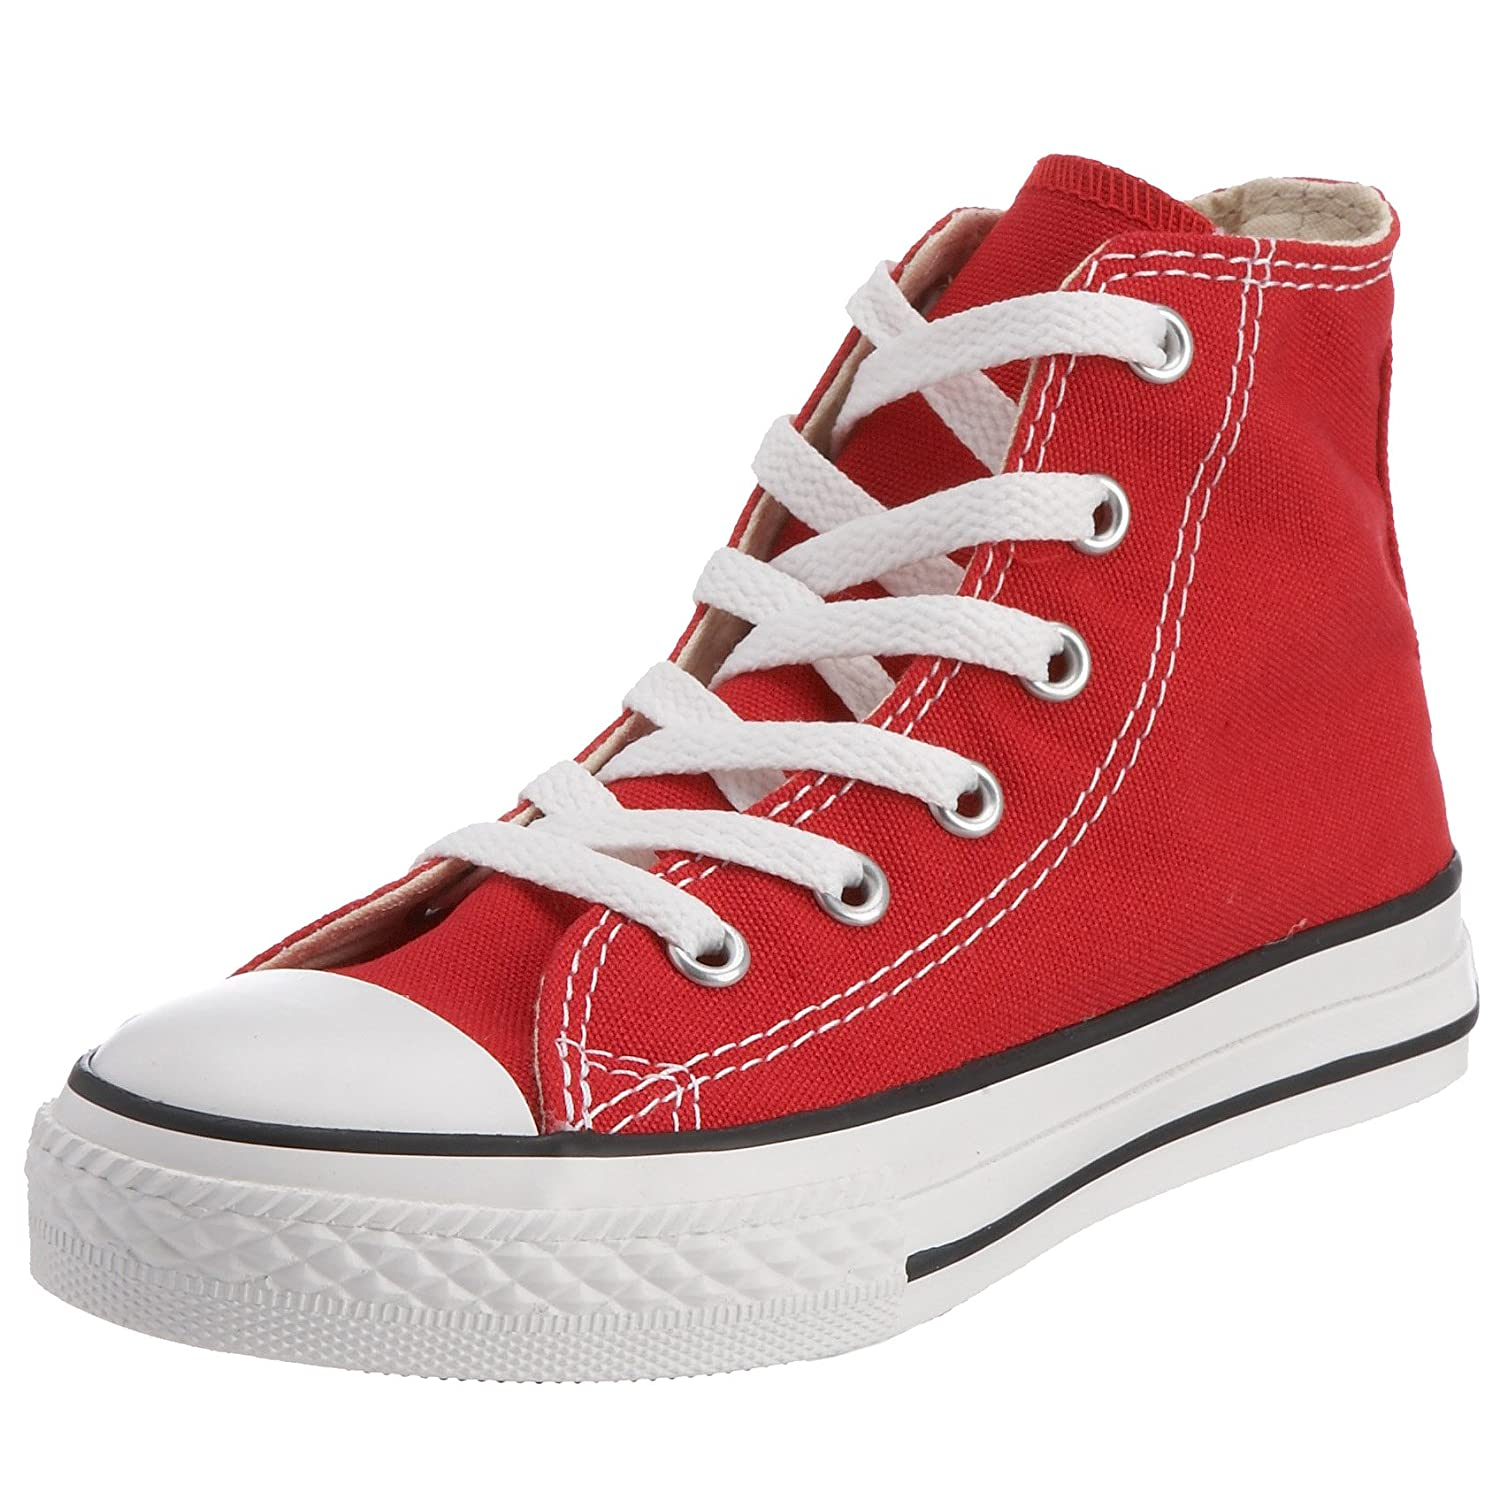 Converse Youths Chuck Taylor All Star Hi Zapatillas de tela Unisex Infantil